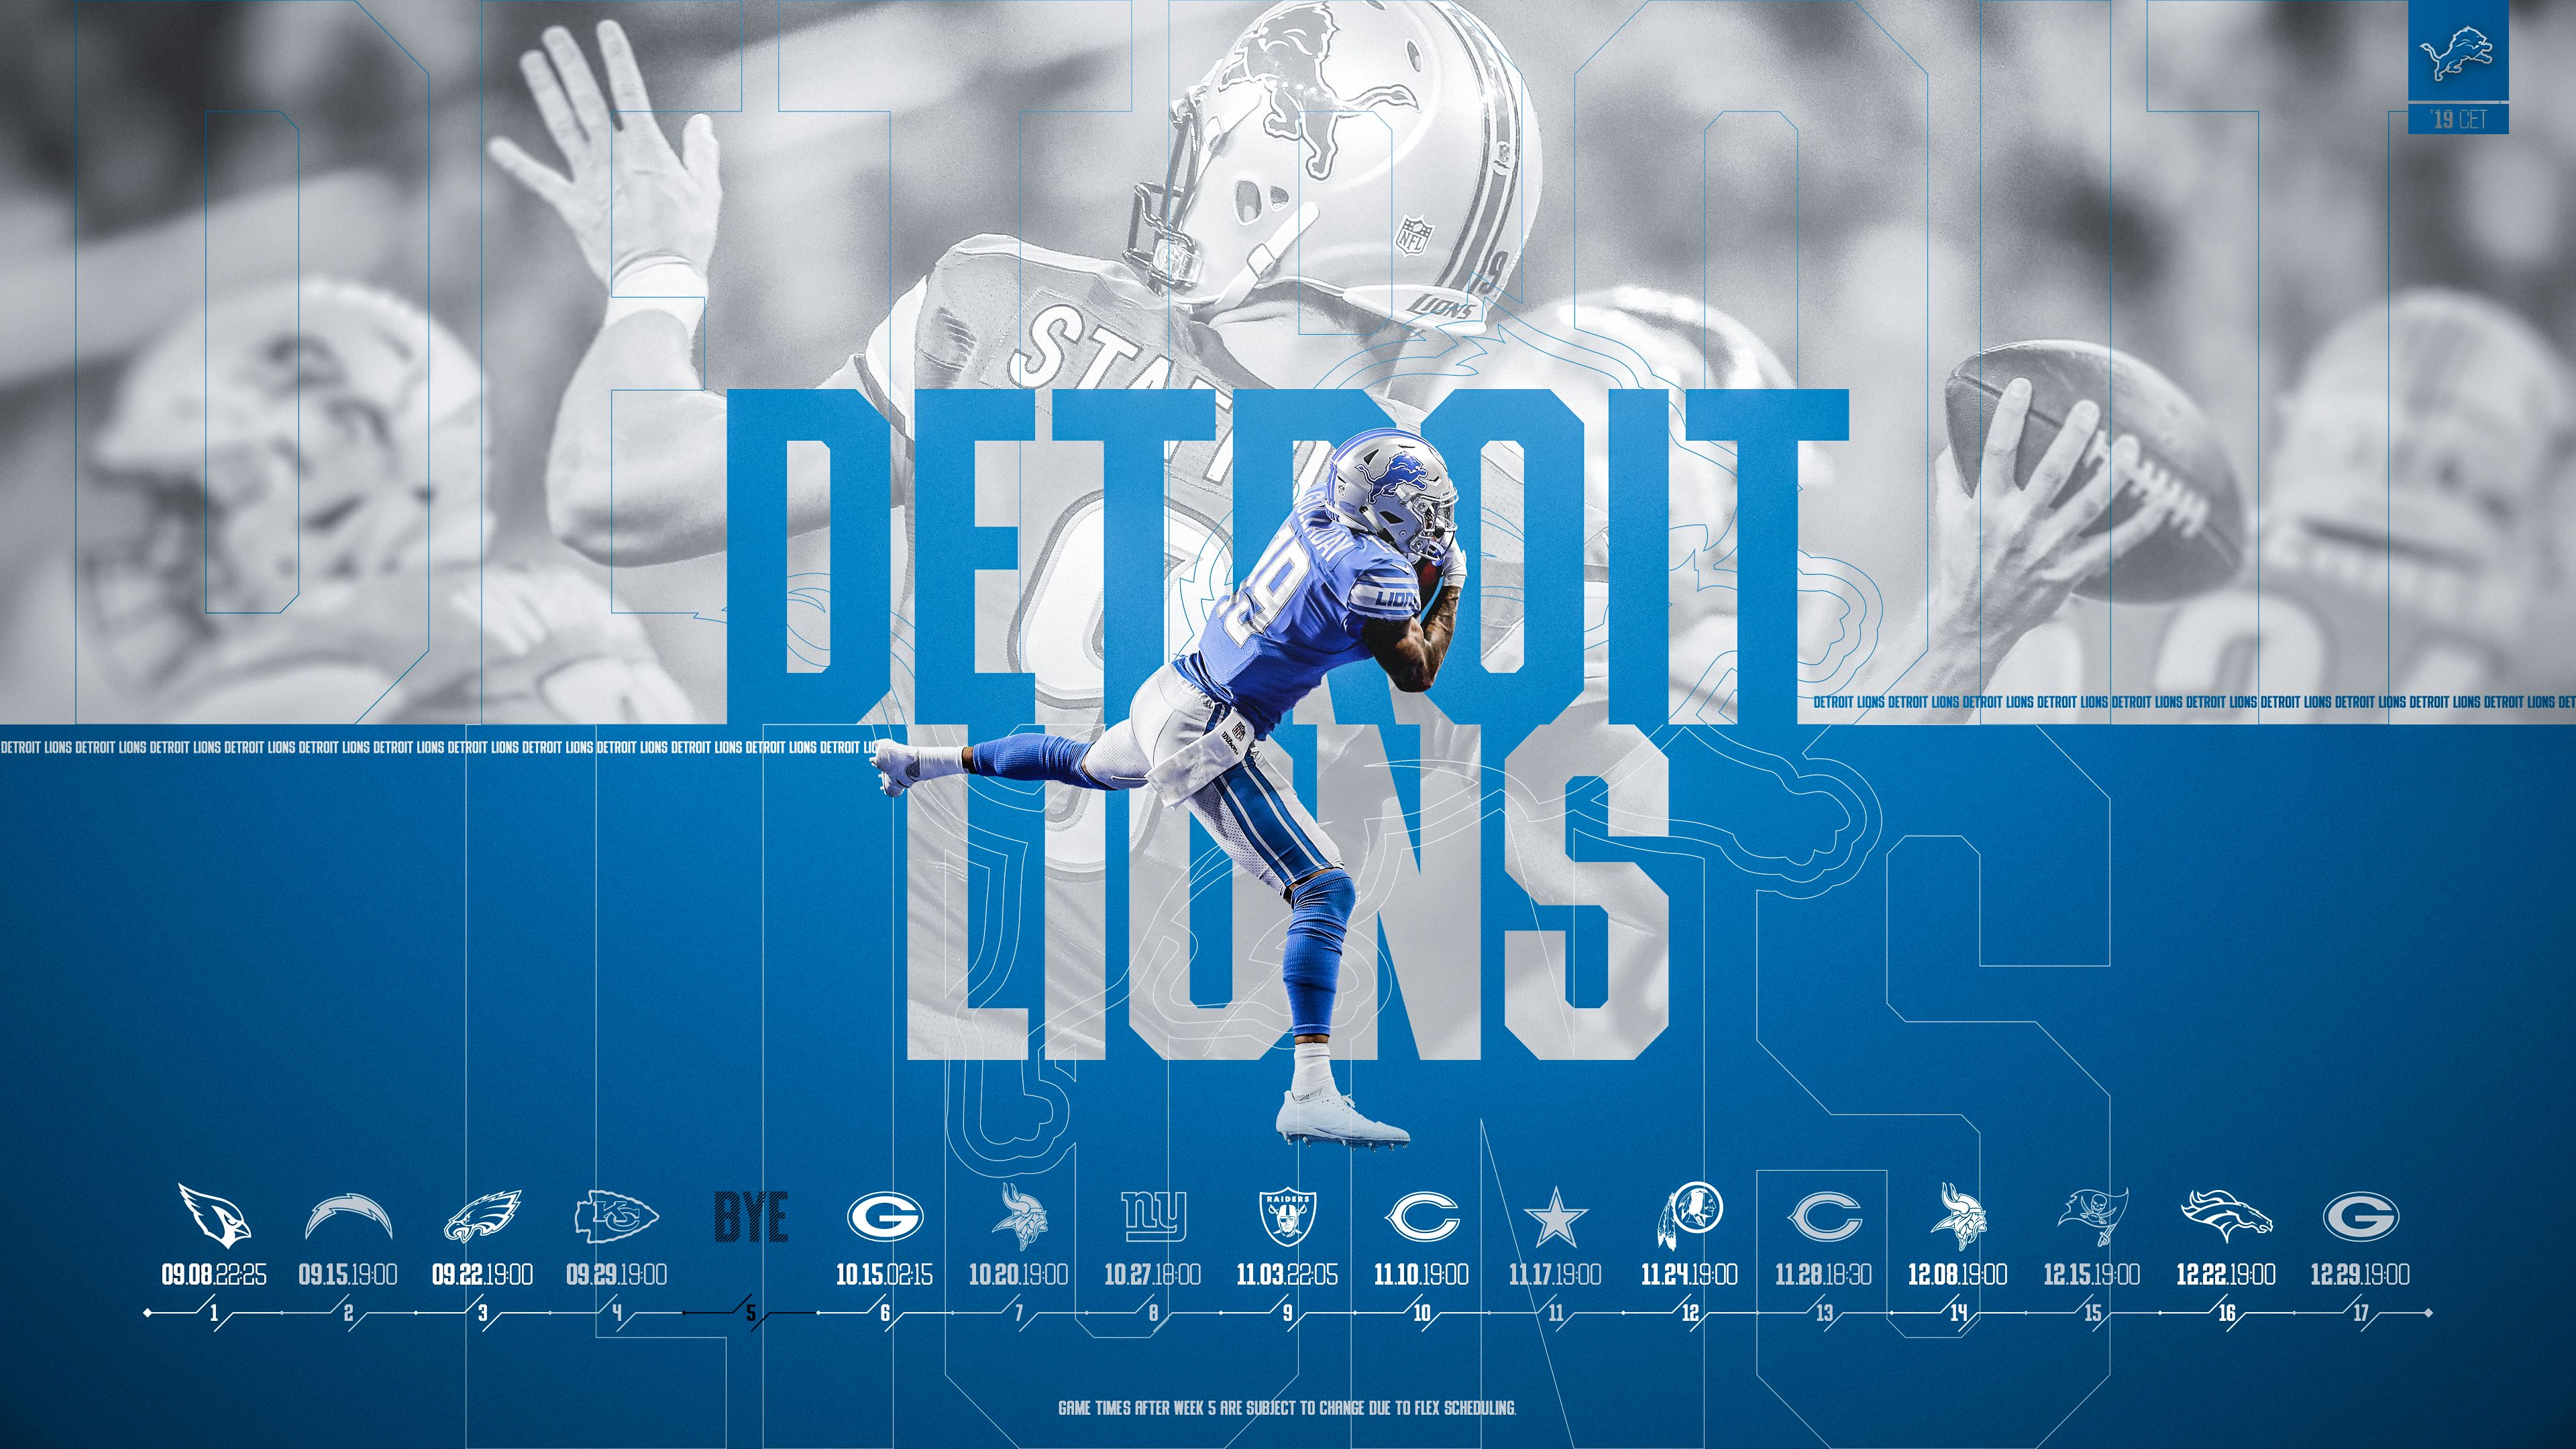 Schedule Wallpaper For The Detroit Lions Regular Season 2019 Central European Time Made By Tobler Gergo Tgersdiy Detroit Lions Detroit Lions